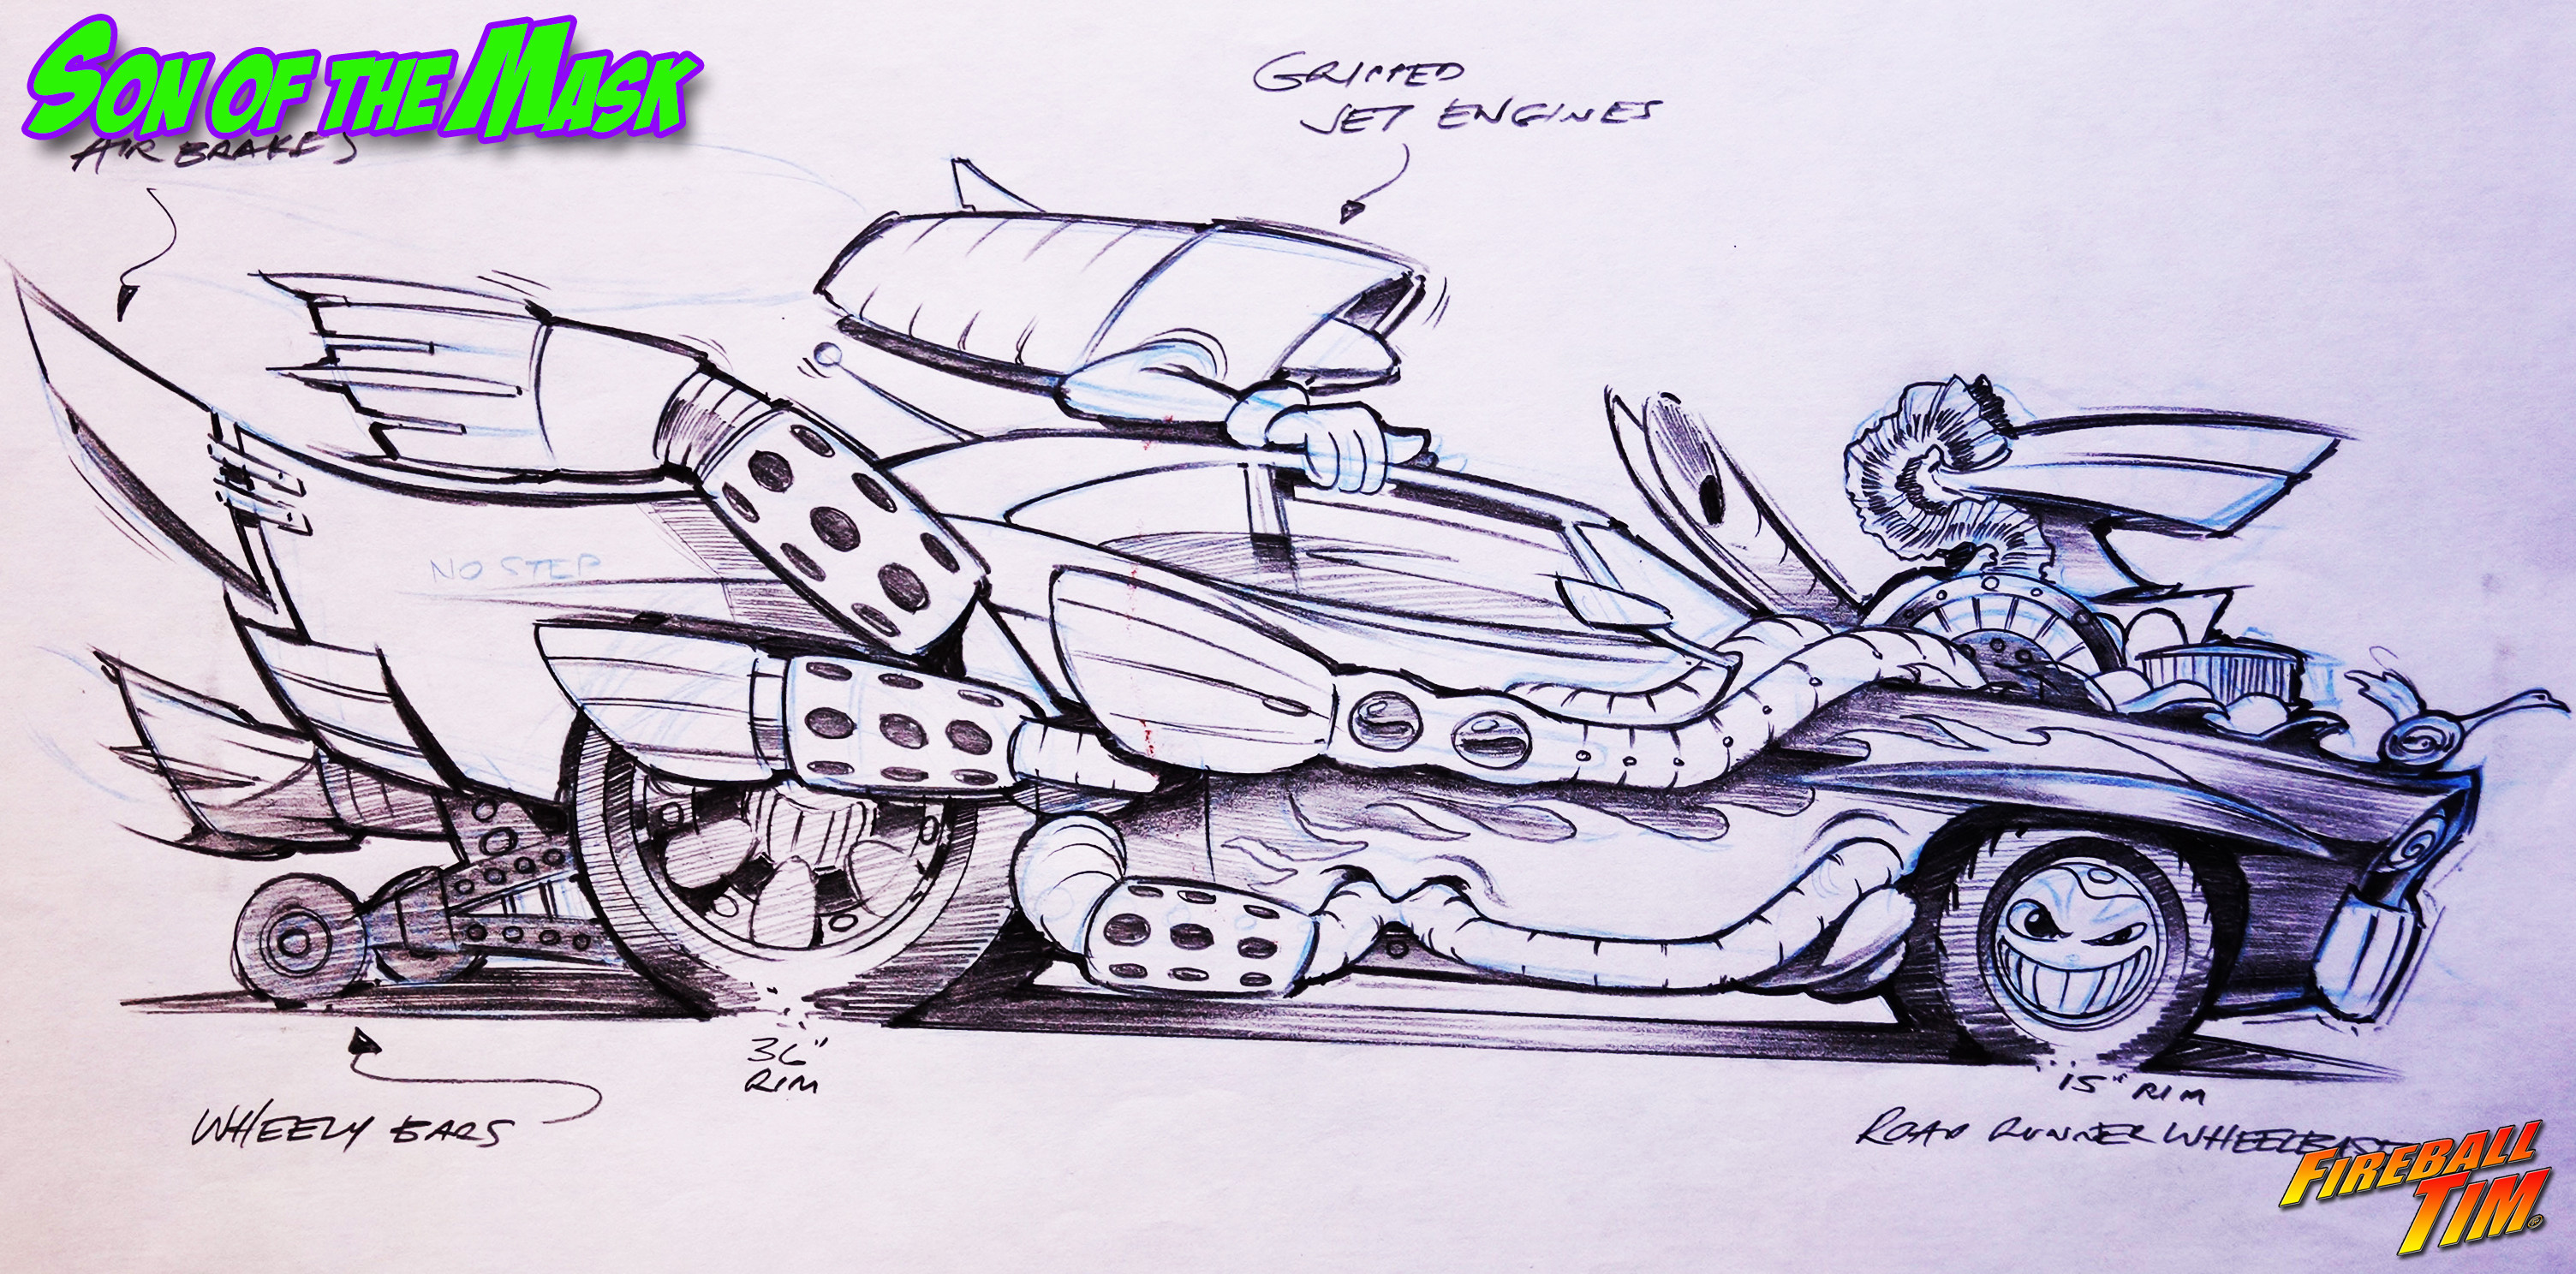 Vehicle Concepts - SON OF THE MASK